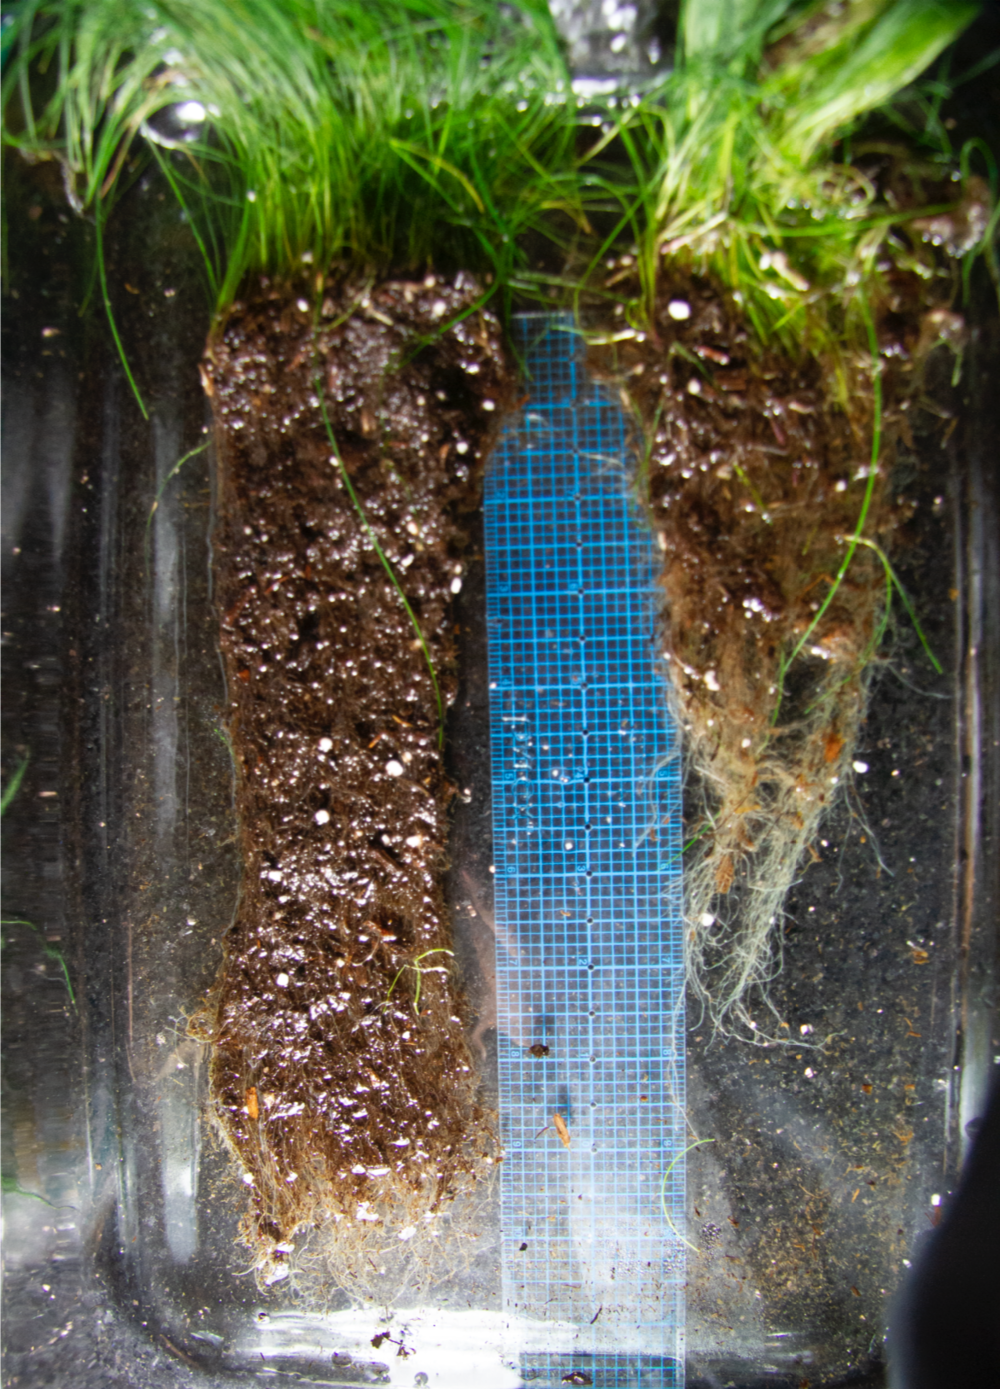 LiveTurf™ vs Control Results - LiveTurf™ treated grass on the left grew significantly longer and denser roots